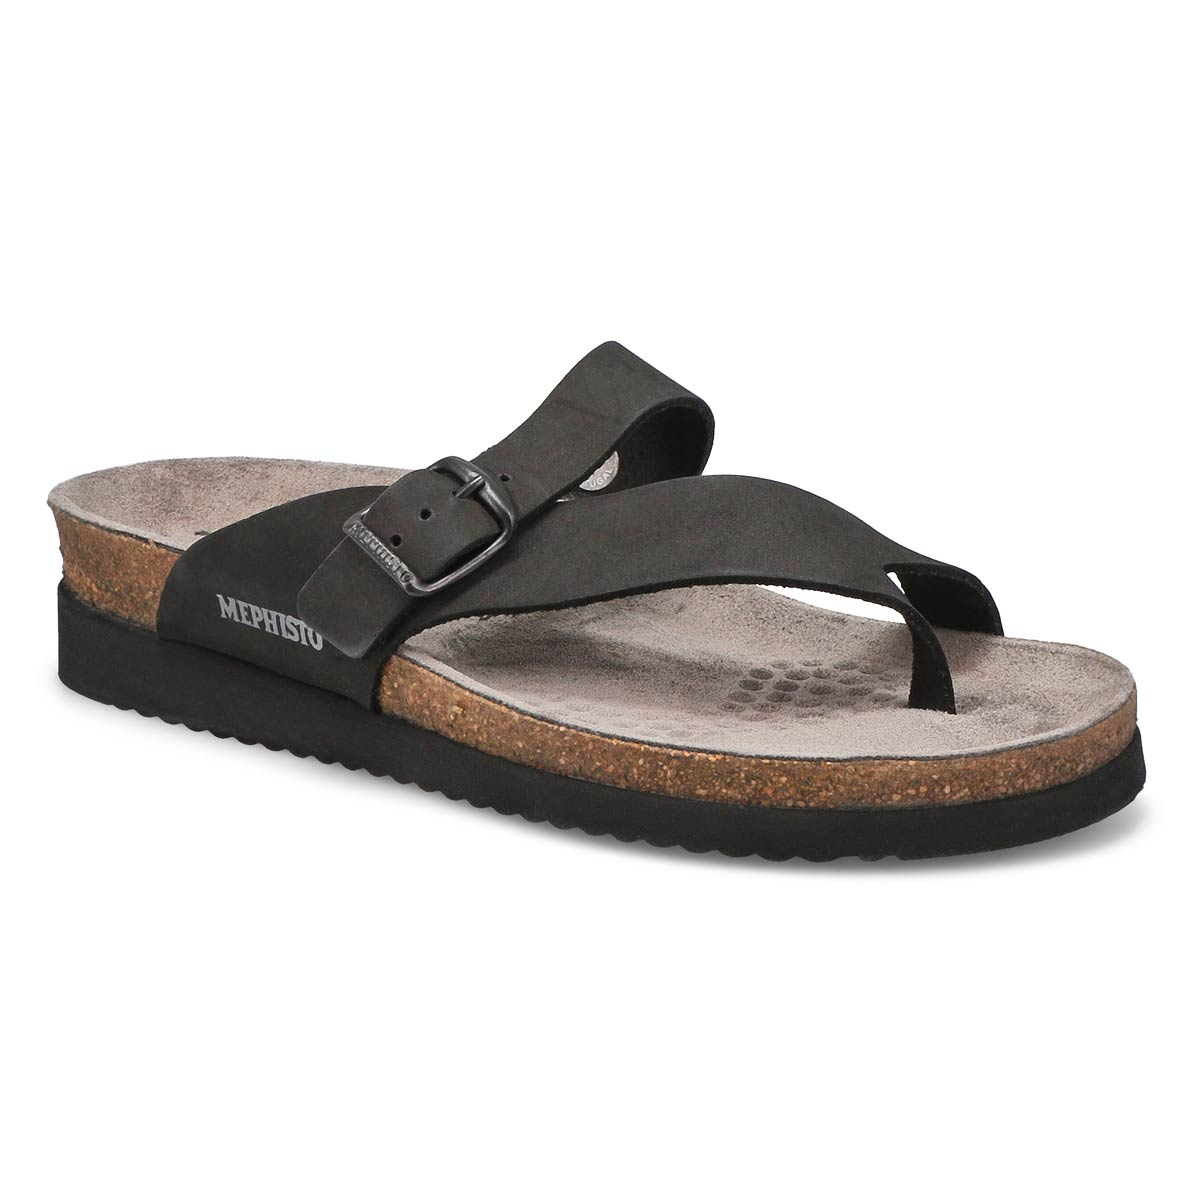 Women's HELEN black nubuck cork footbed thongs